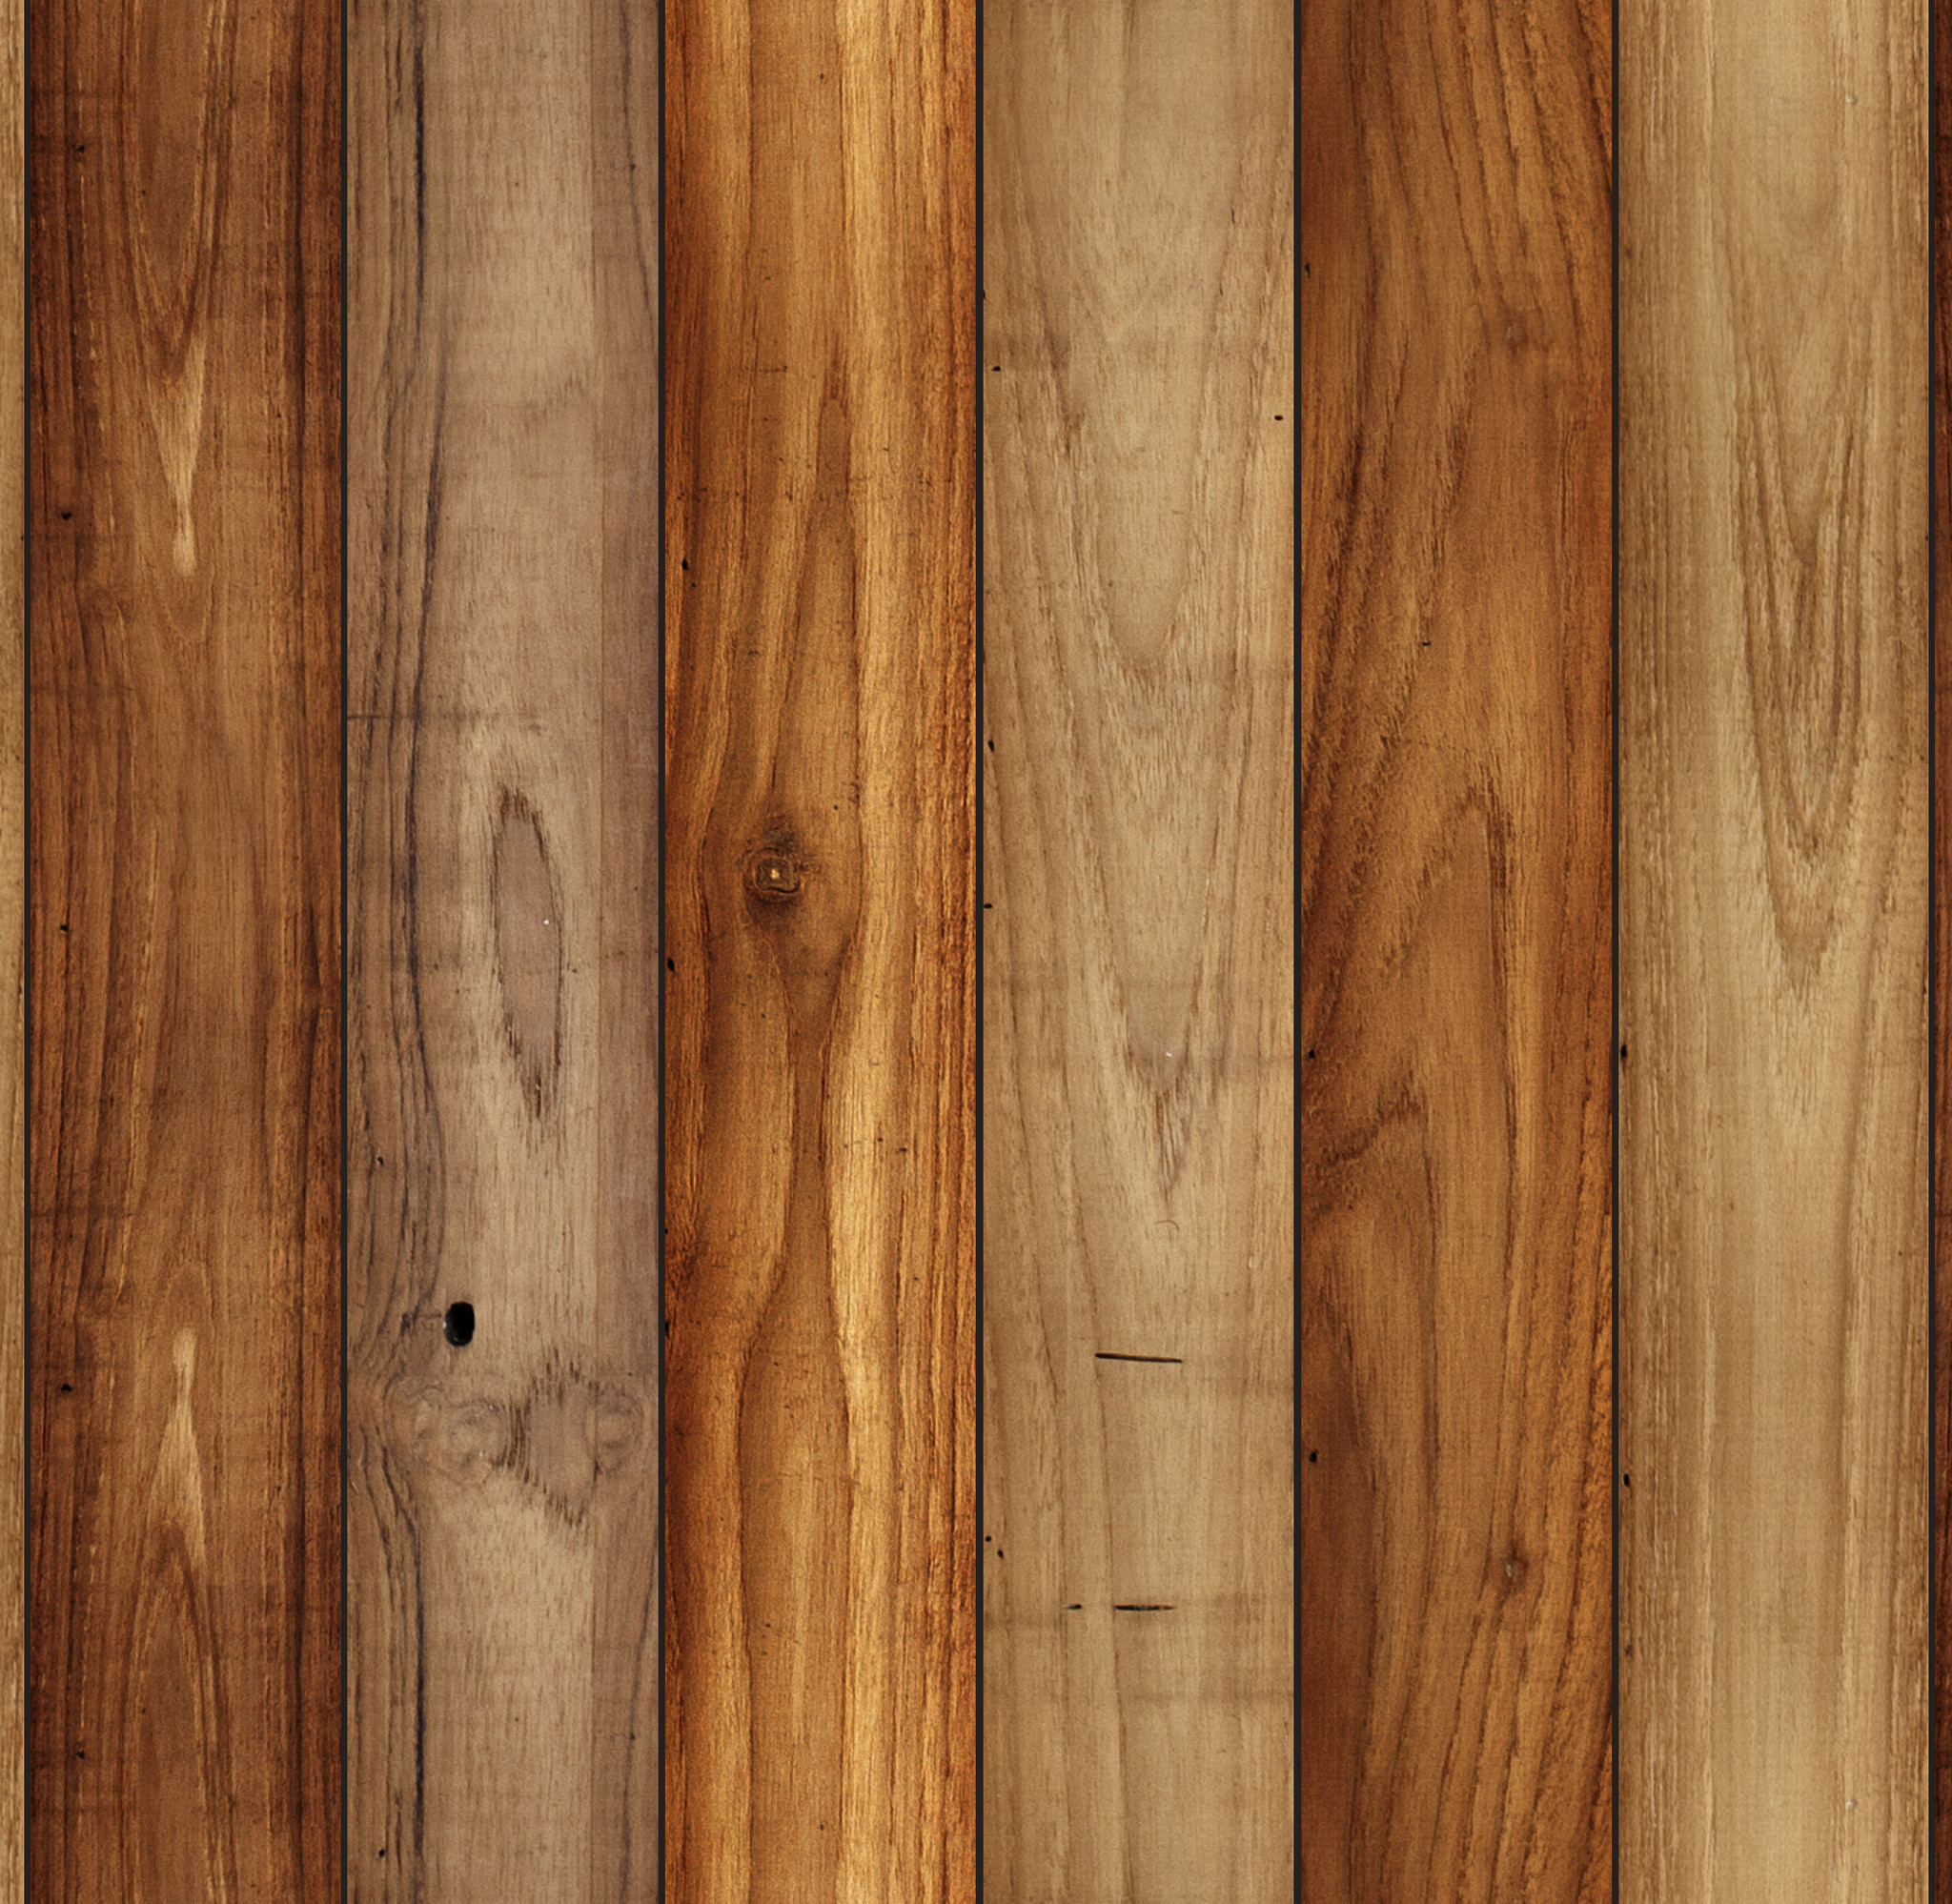 Our Wood Panel Removable Wallpaper can be a rustic accent in your urban  apartment. Adding